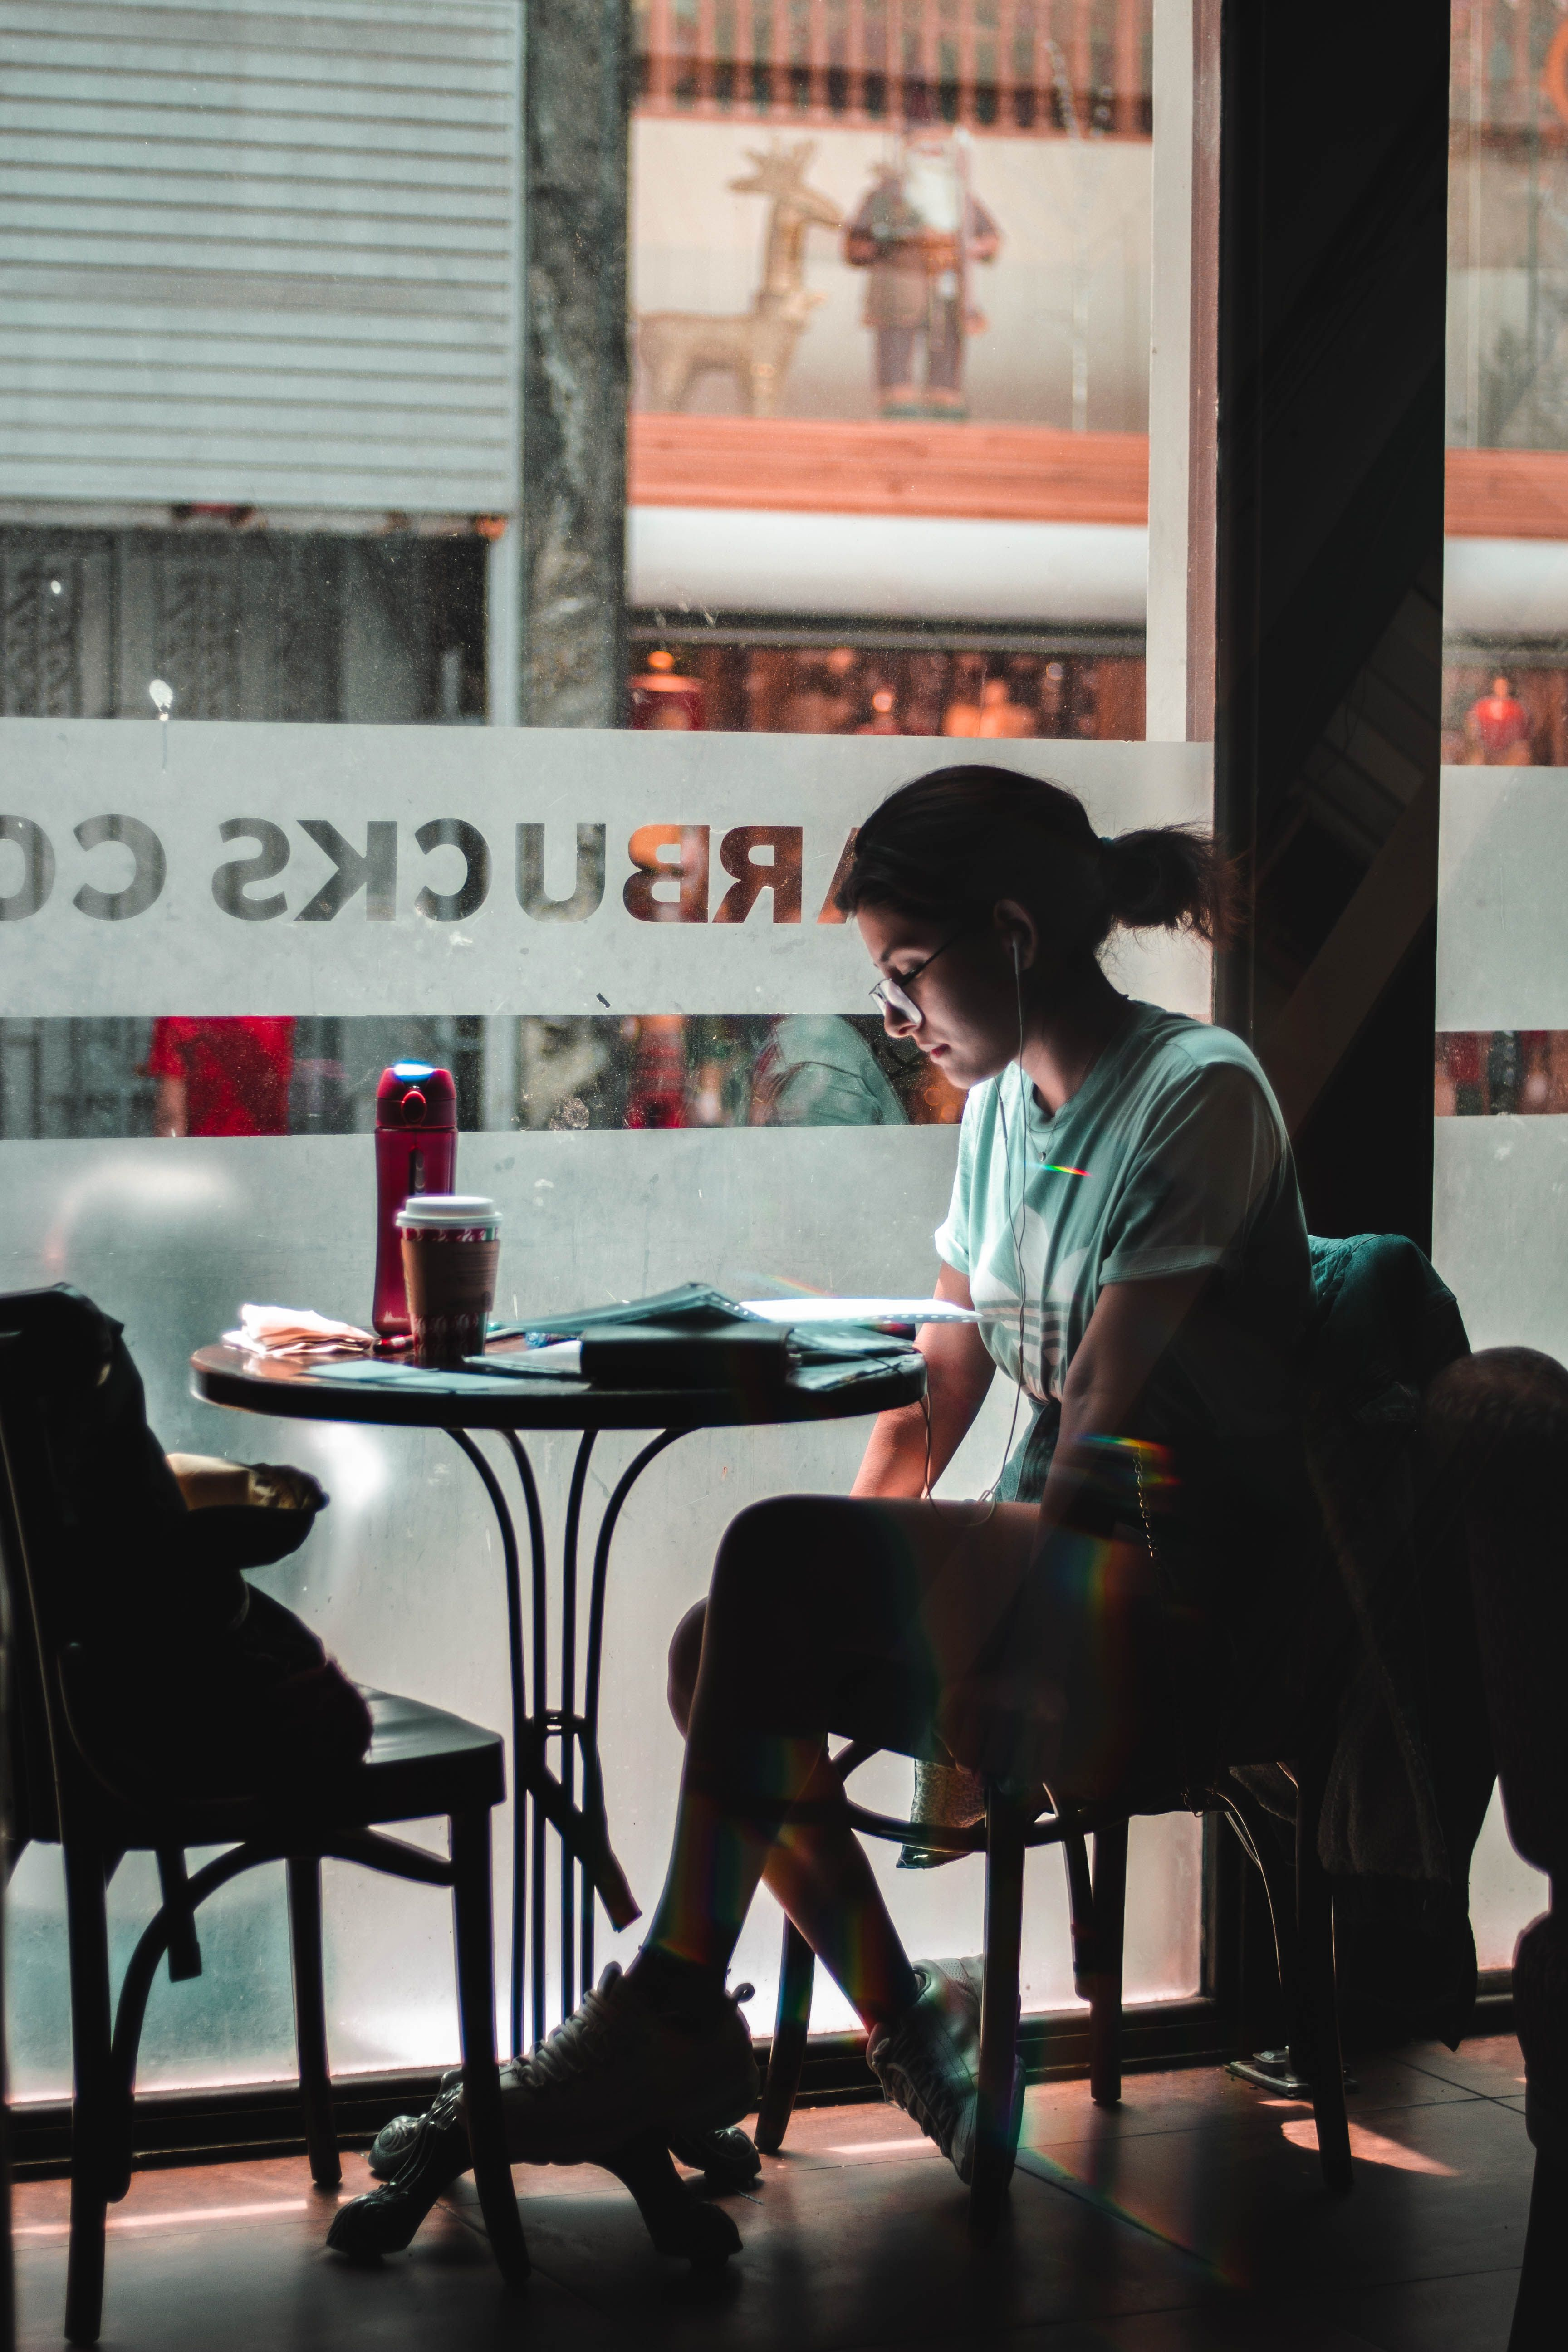 12 Formidable High Heels Snapshots Woman Sitting Alone By The Glass Window At Starbucks Cafe Human Sitting Person In 2020 Cafe Pictures Cool Cafe Person Sitting